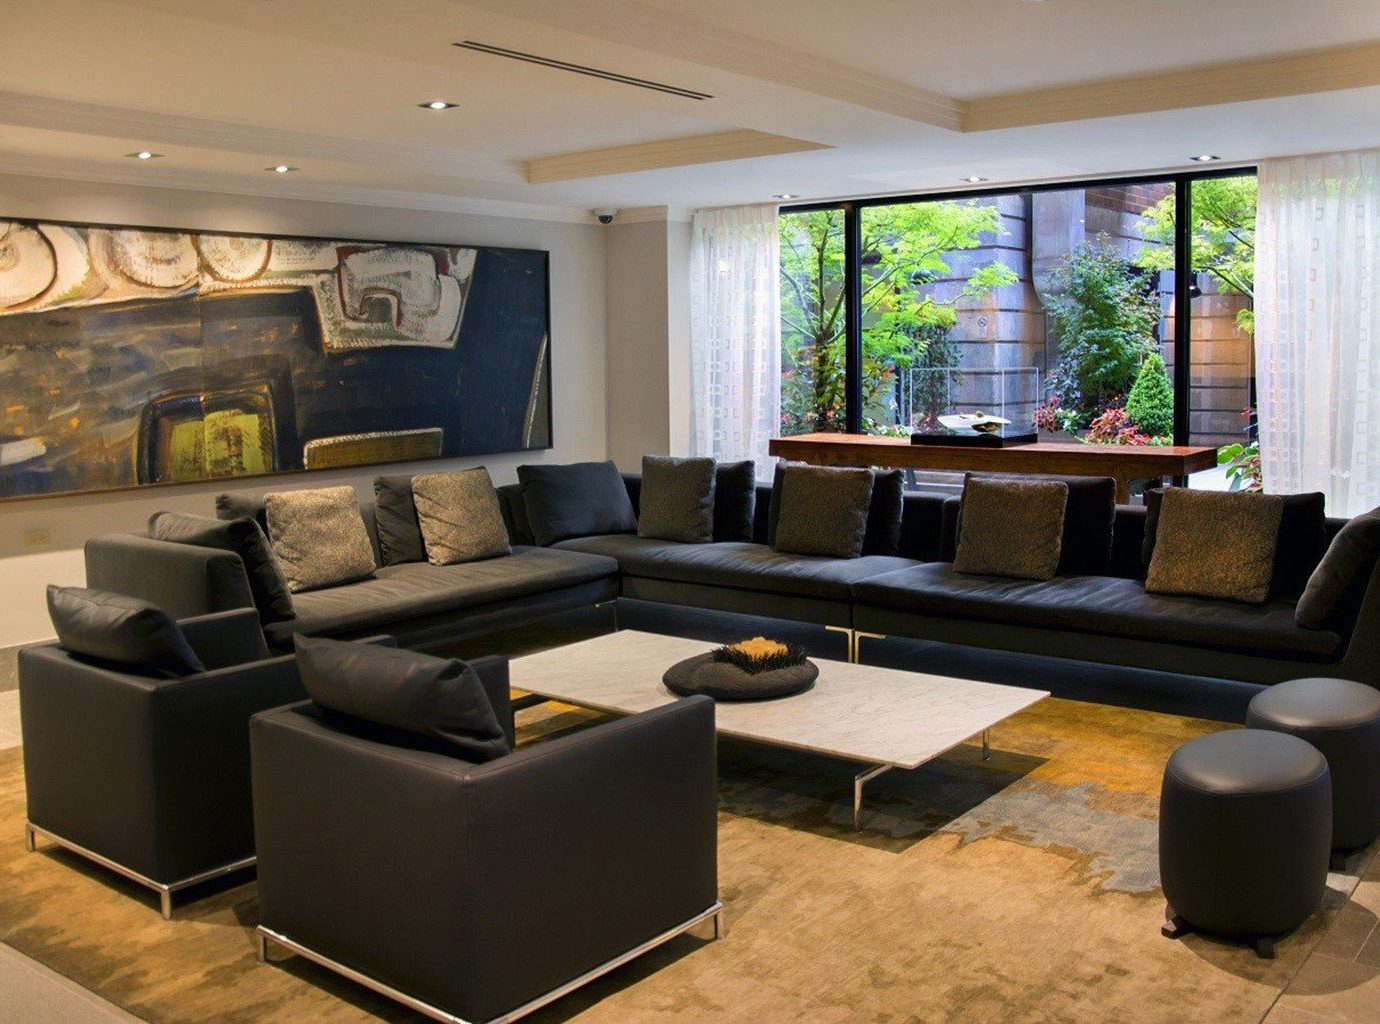 sofa living room property Lobby condominium home waiting room recreation room conference hall Suite